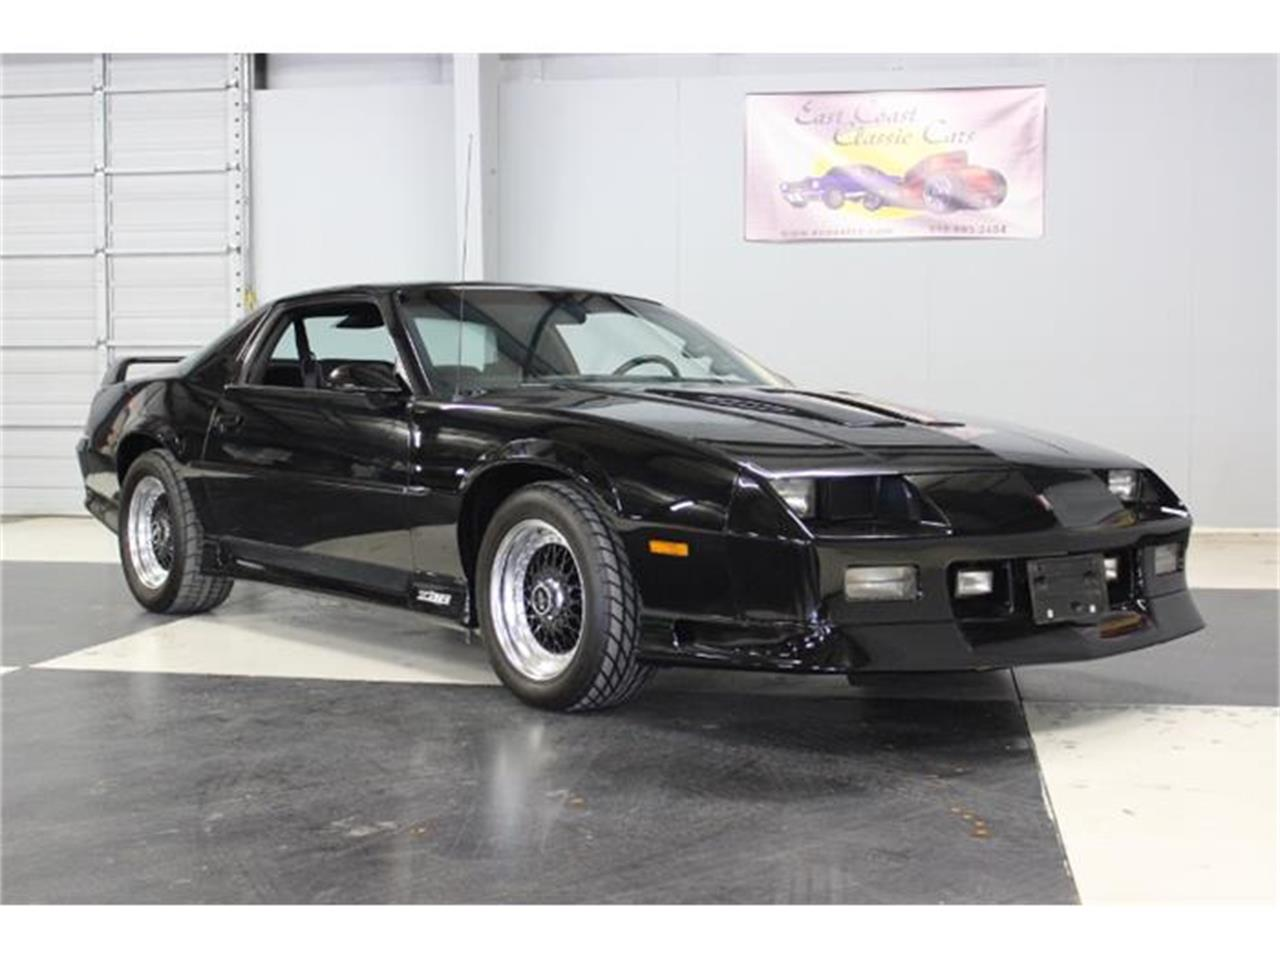 Large Picture of 1991 Chevrolet Camaro Z28 located in Lillington North Carolina - $52,000.00 - GPGQ